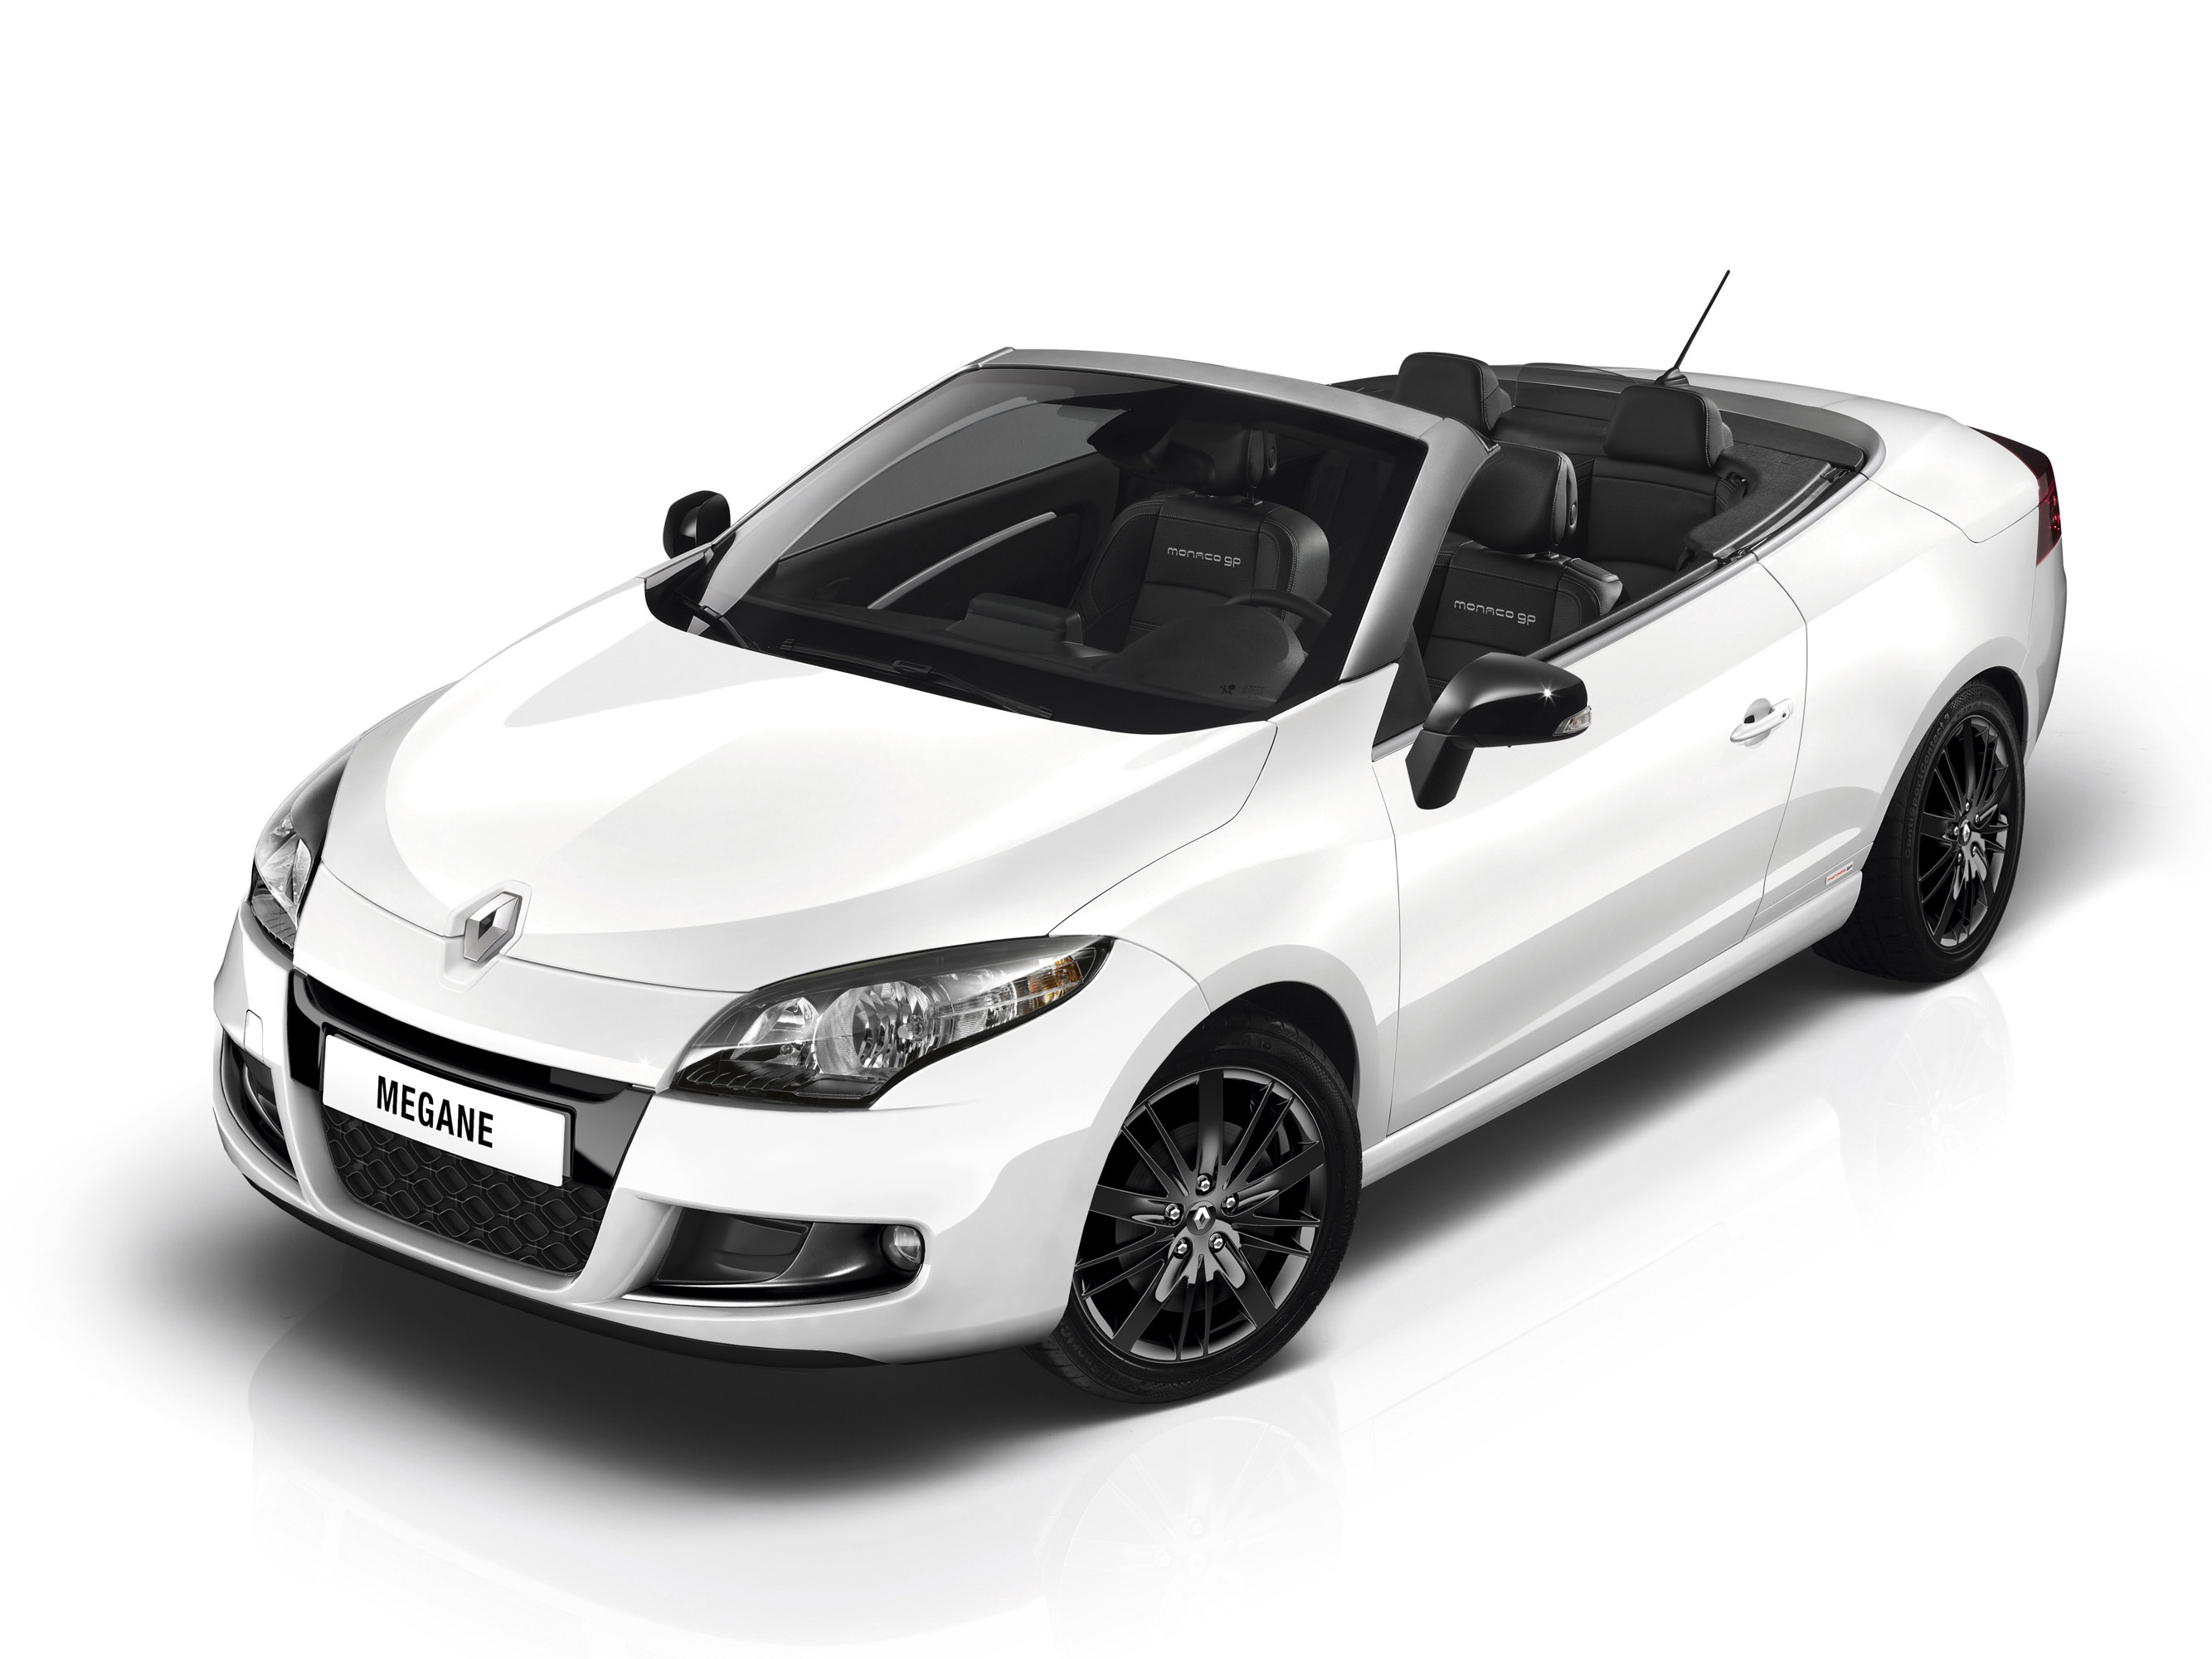 2012 renault megane monaco gp coupe cabriolet hd. Black Bedroom Furniture Sets. Home Design Ideas